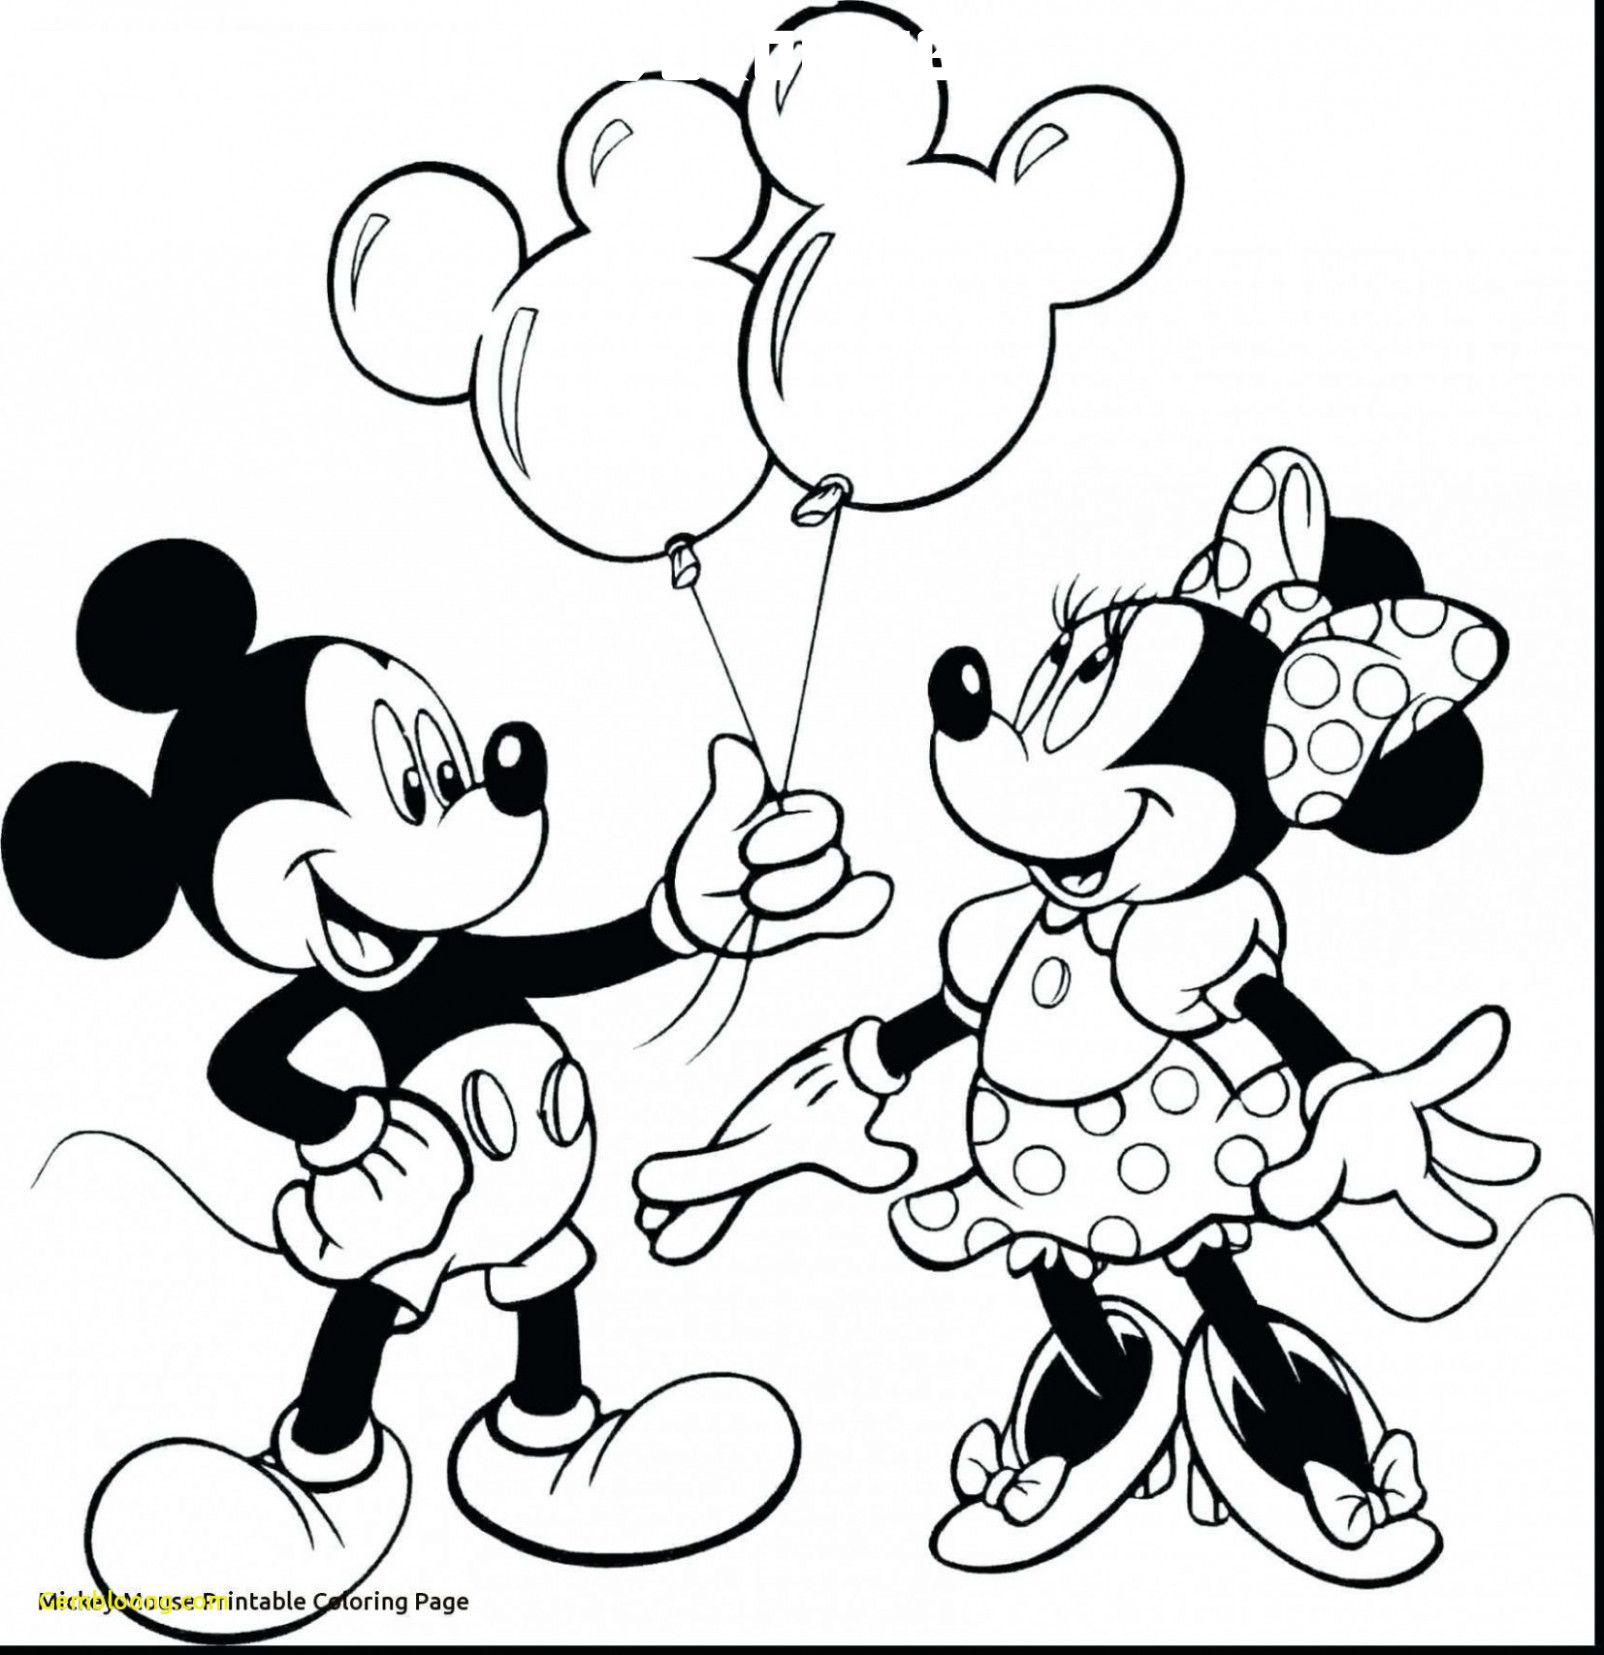 8 Minnie Mouse Coloring In 2020 Mickey Mouse Coloring Pages Minnie Mouse Drawing Minnie Mouse Coloring Pages